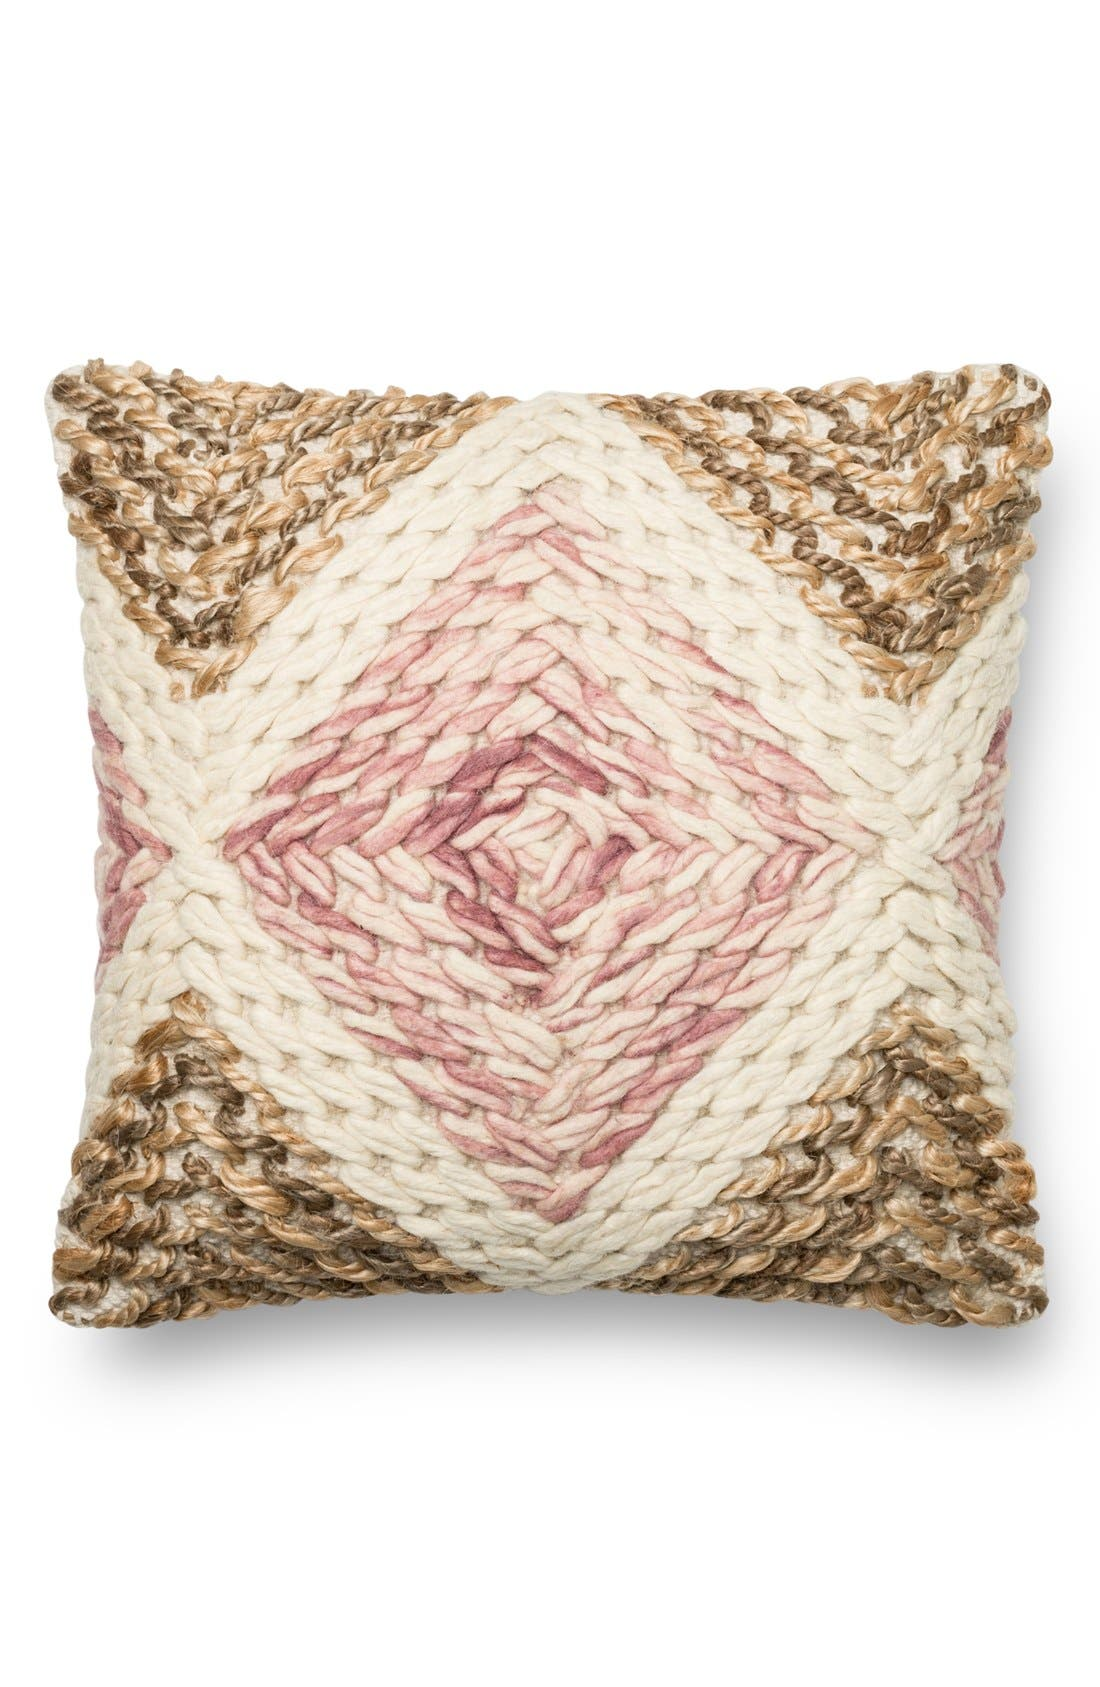 Main Image - Loloi 'Bohemian Chic' Pillow